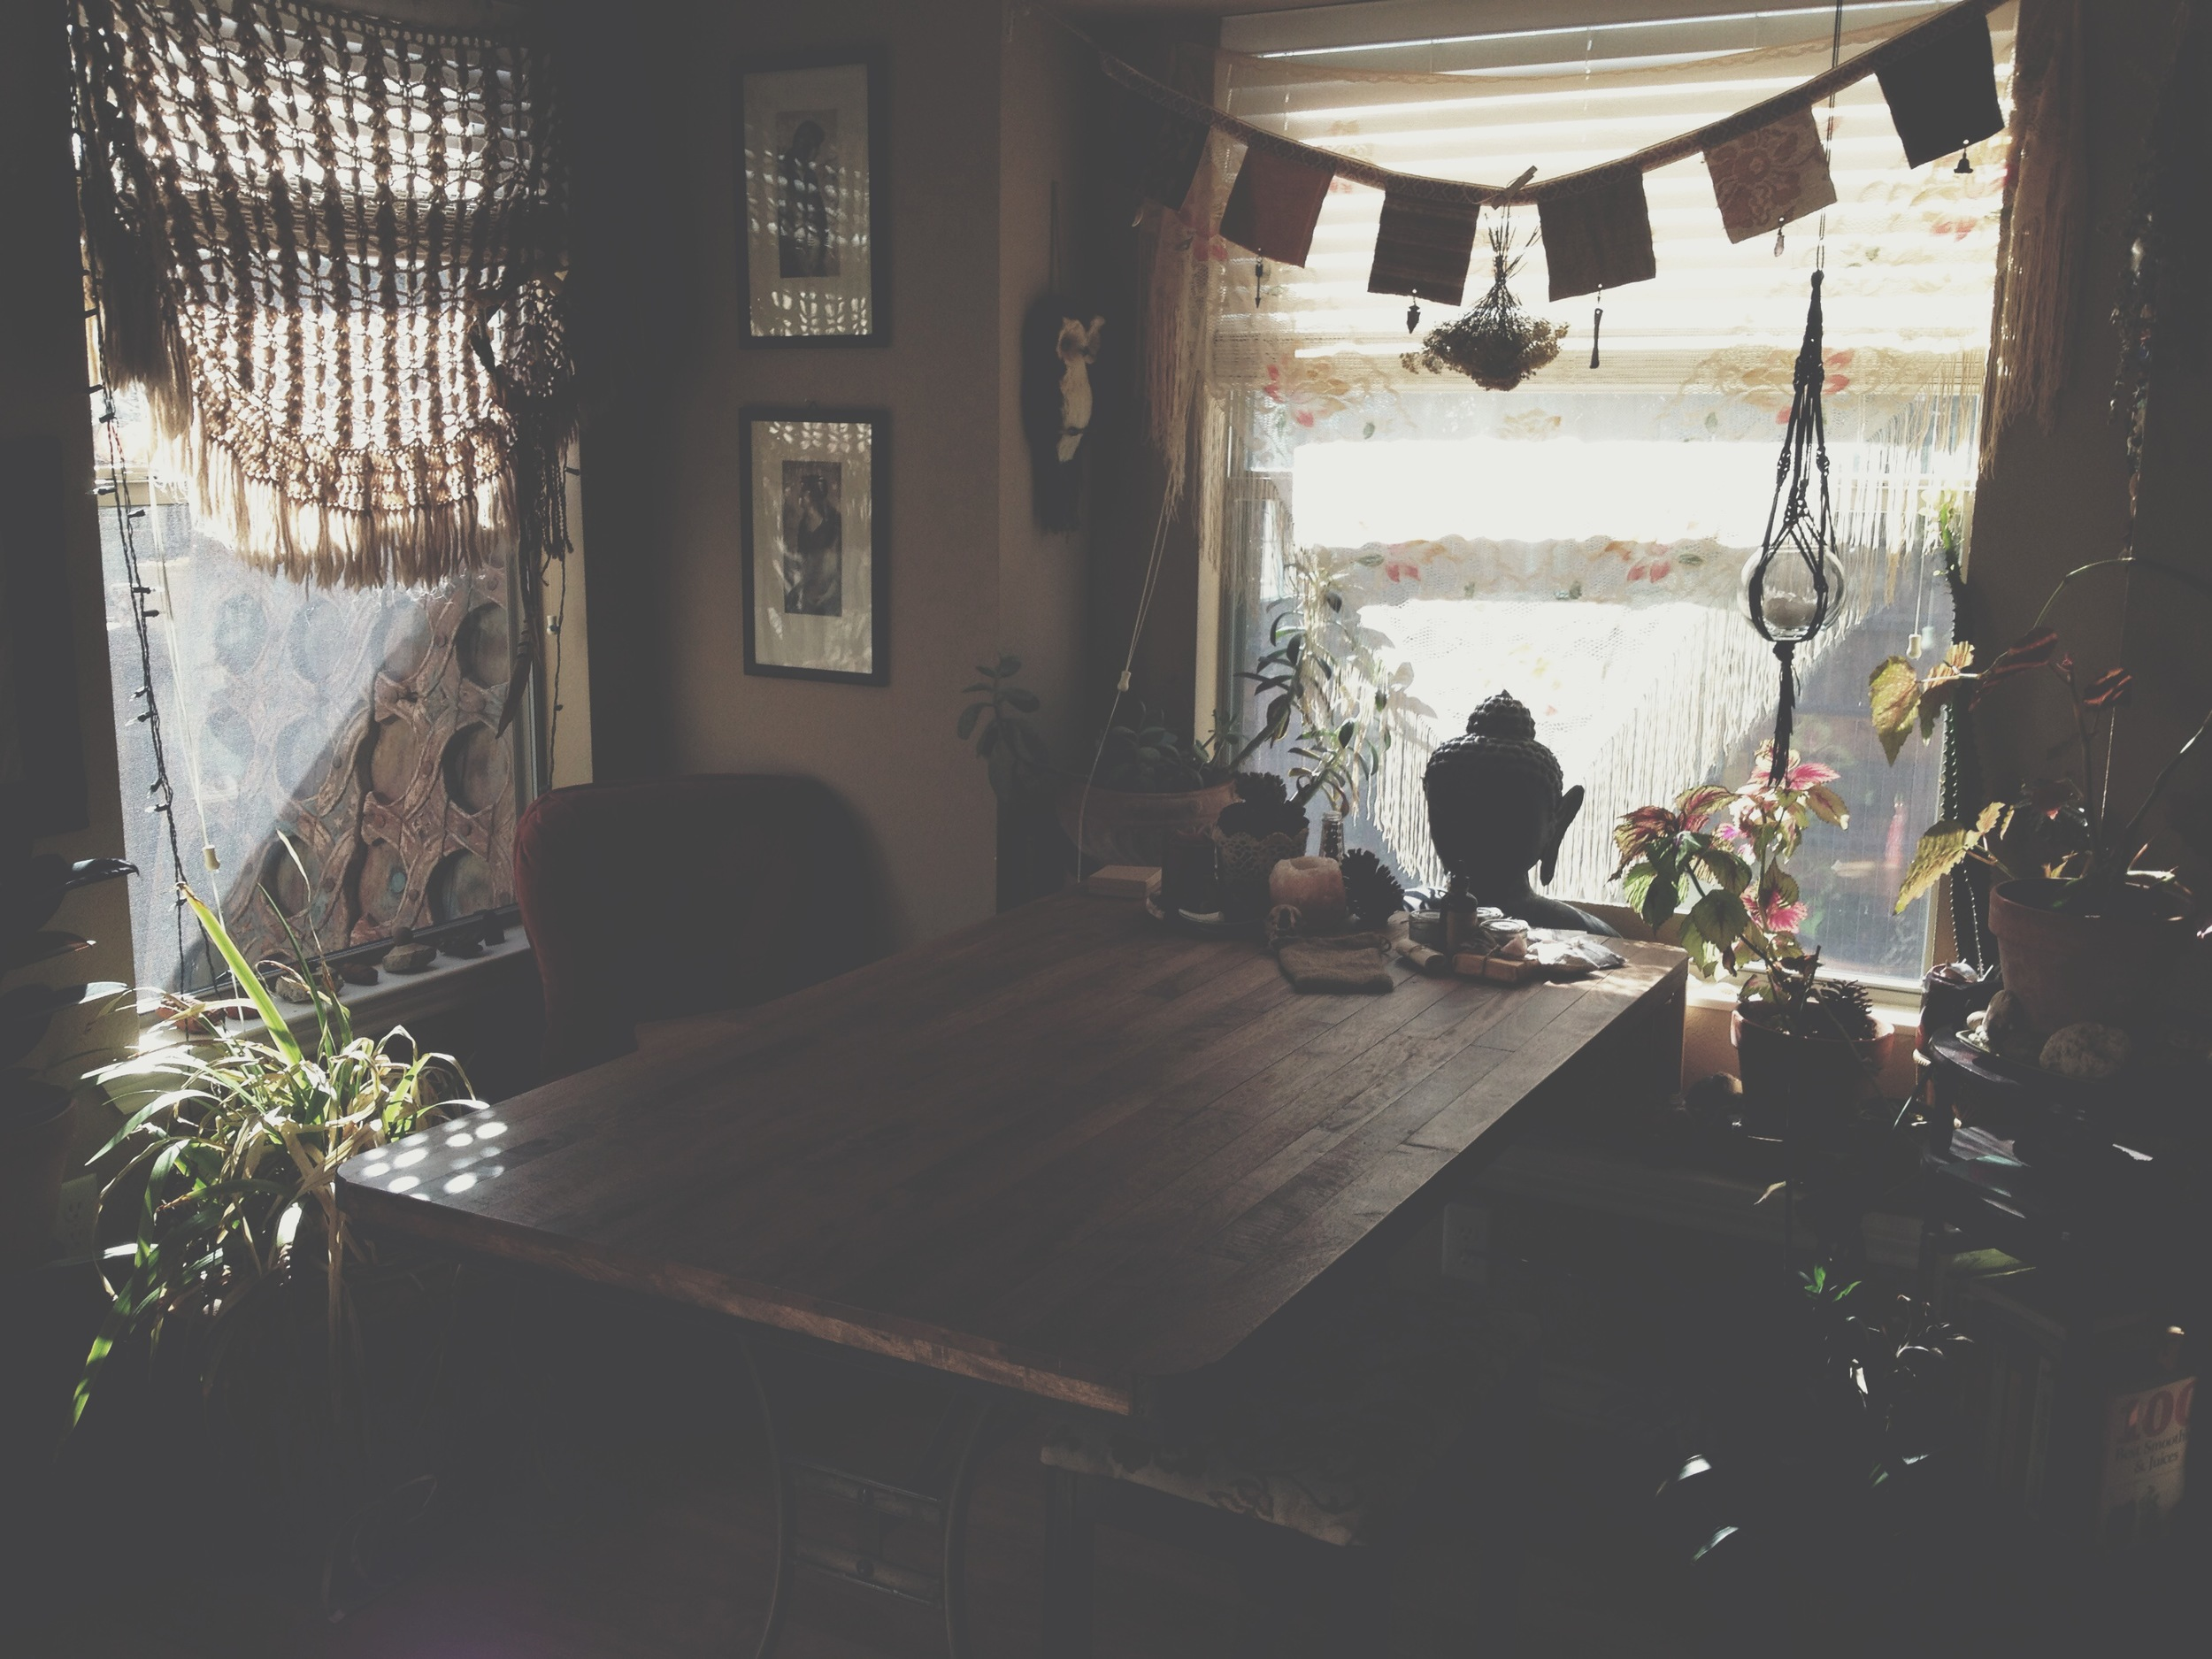 a moment while cleaning house i caught a glimpse of this space and had to capture it